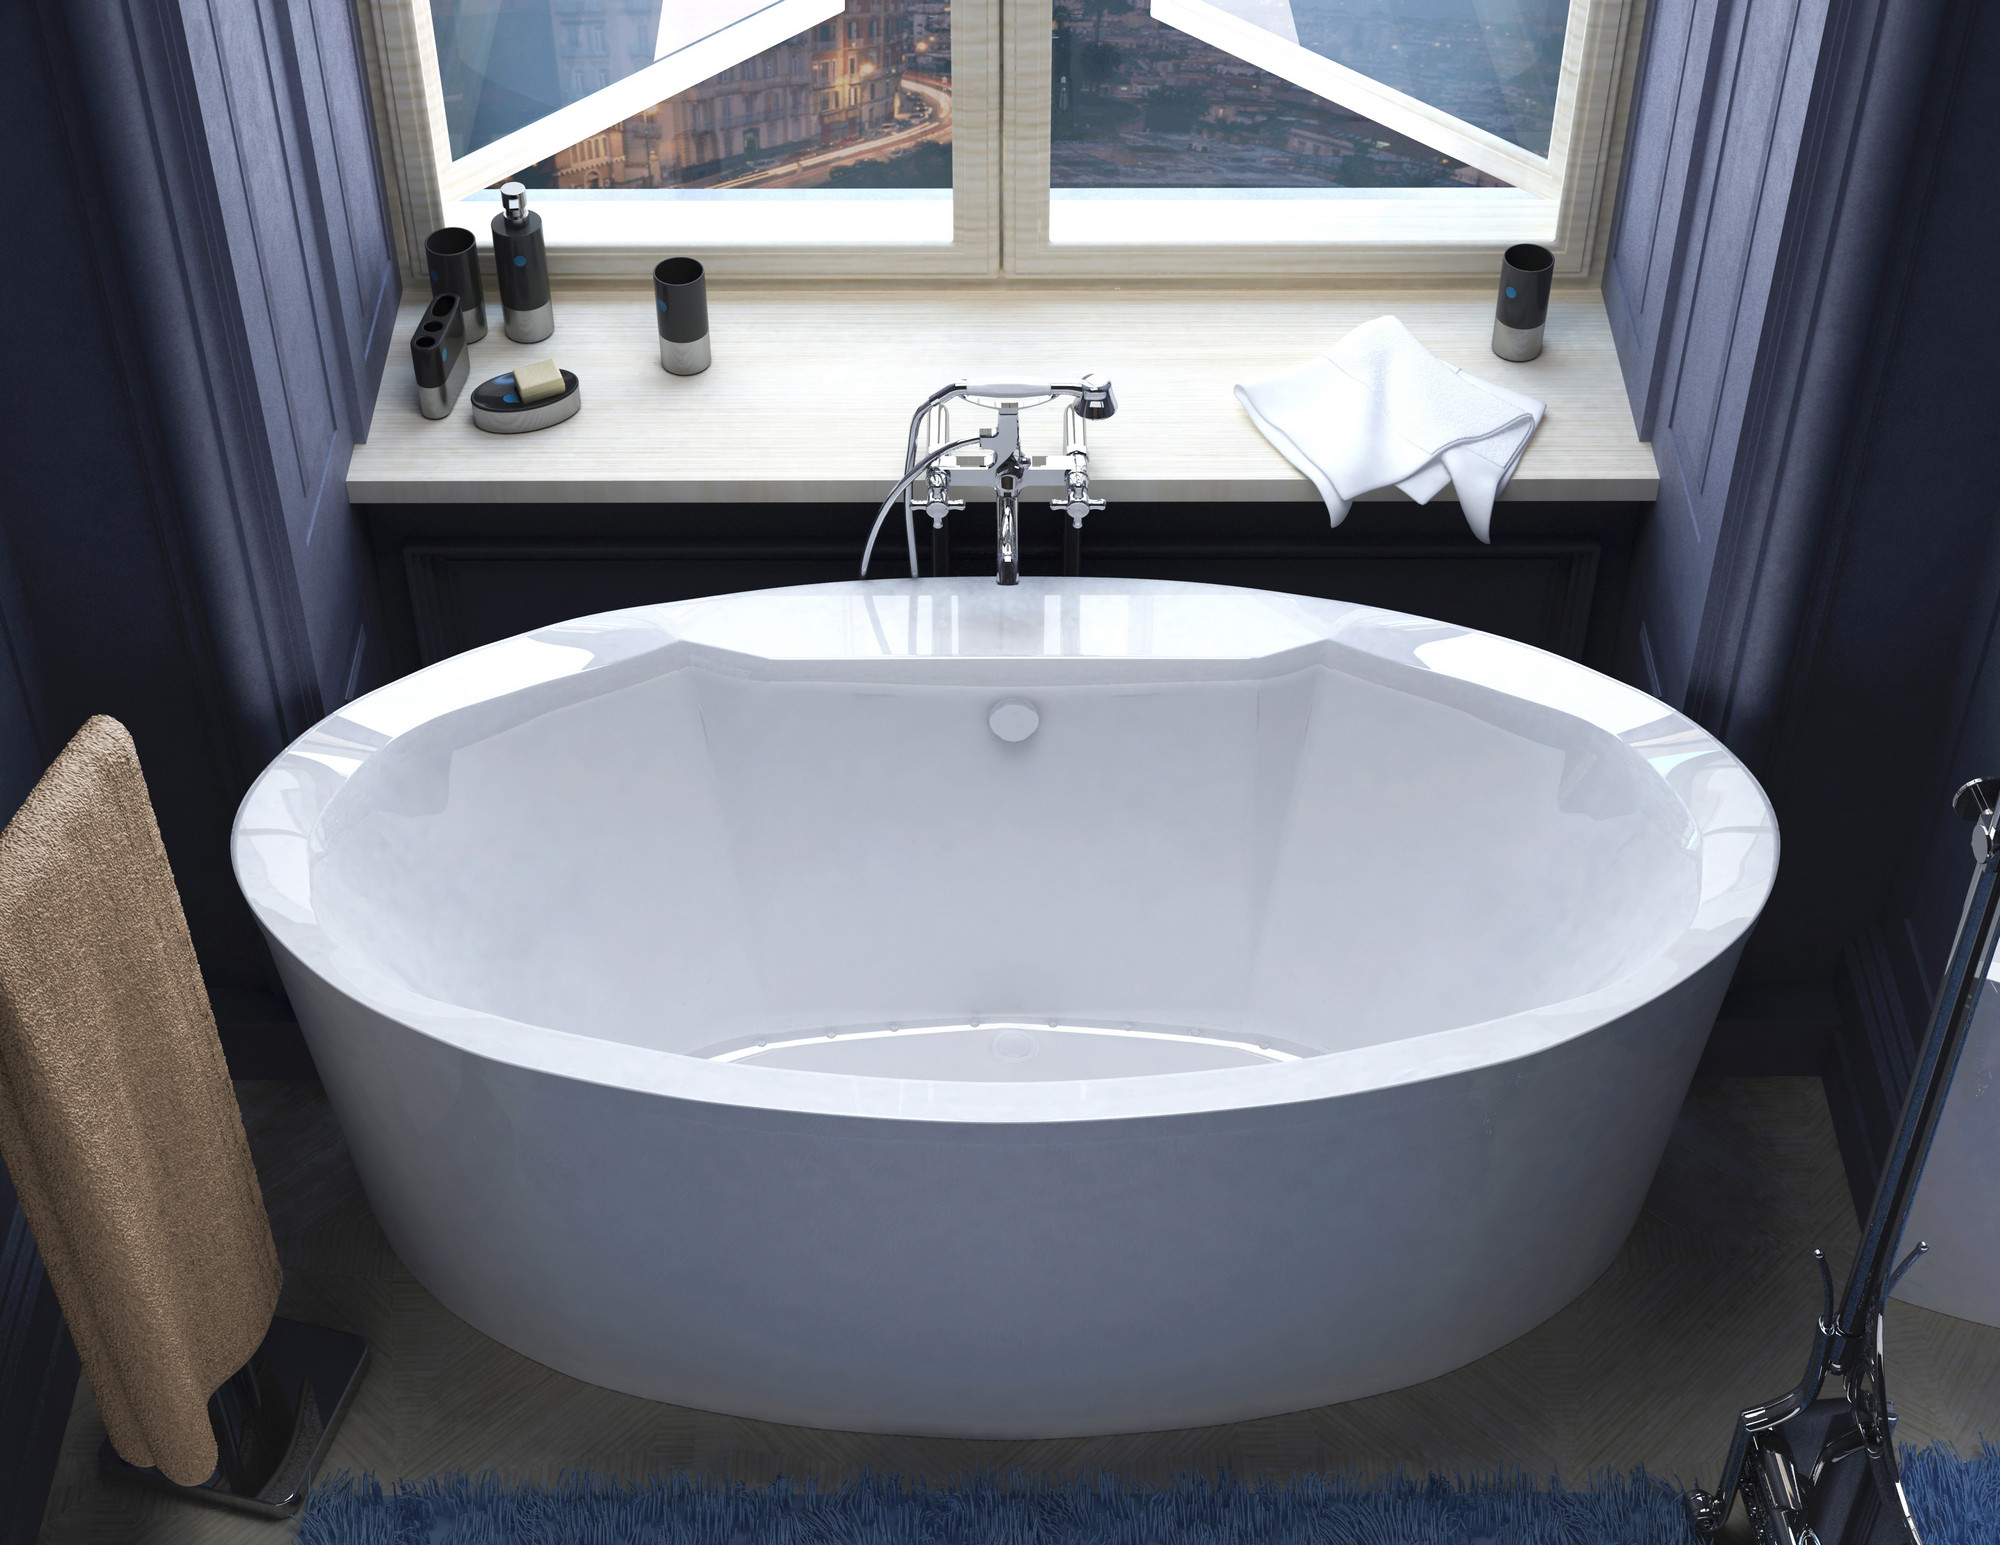 MediTub 3468SA Suisse Oval Freestanding Air Jet Bathtub With Right Blower